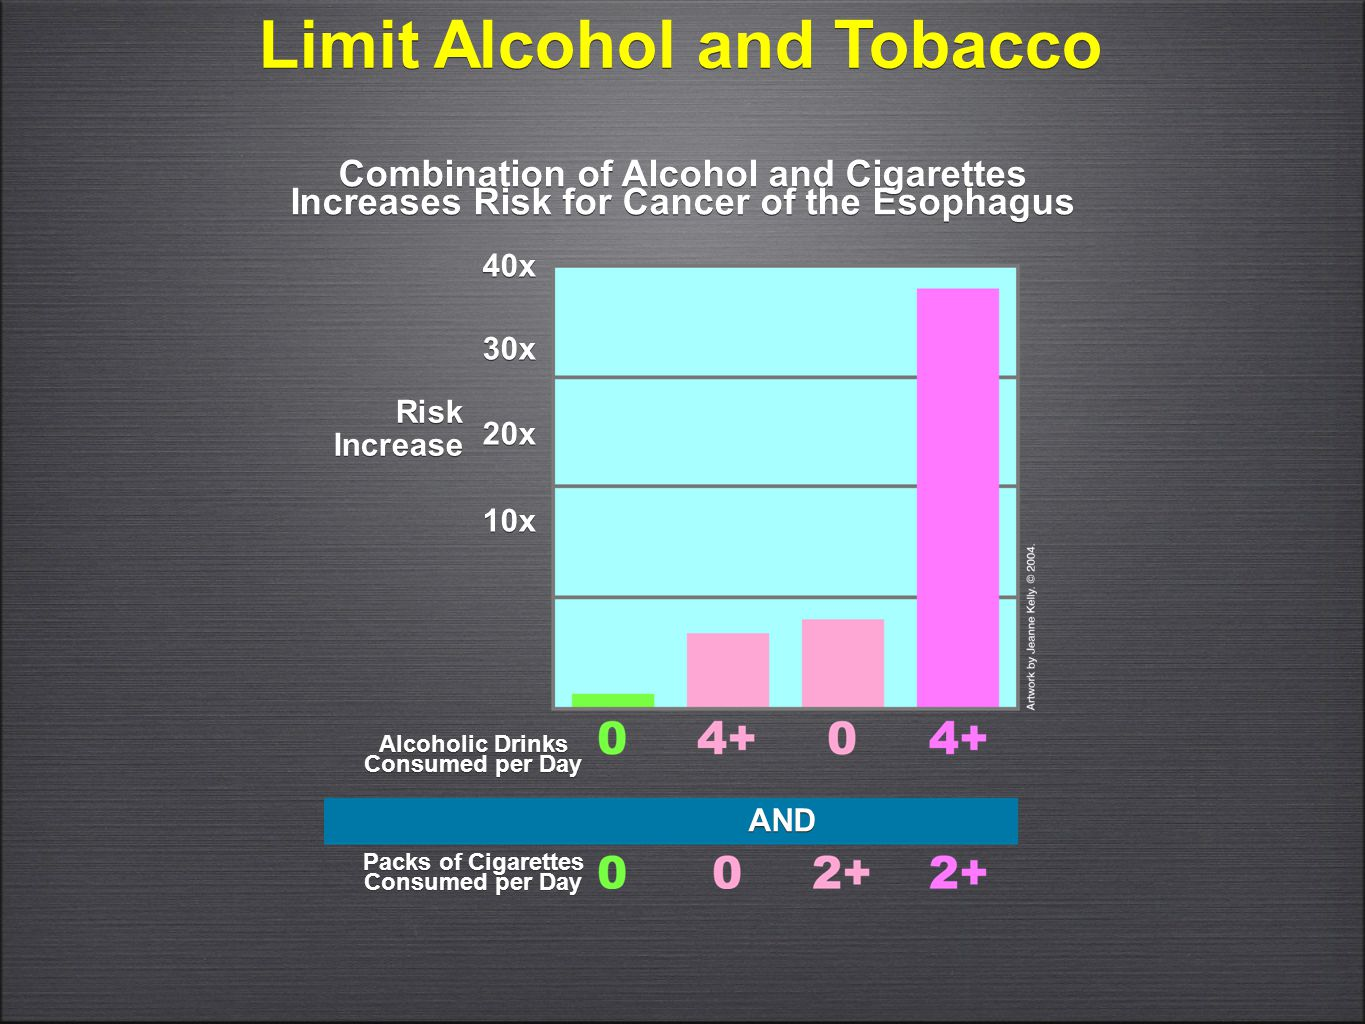 Limit Alcohol and Tobacco